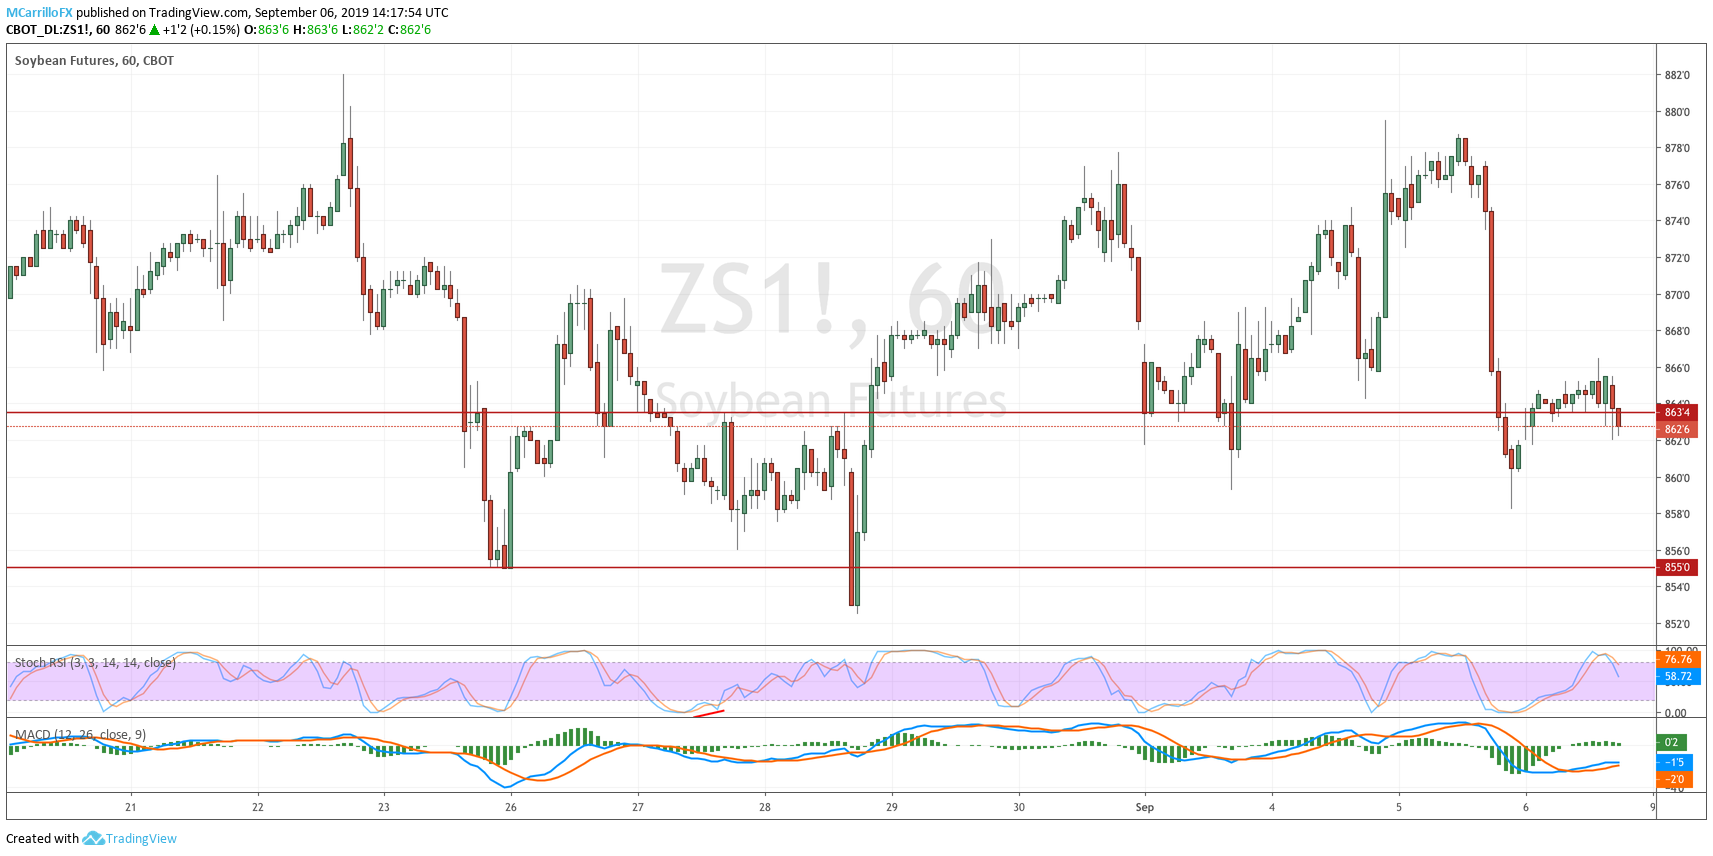 ZS1 Soybean Futures 1-hour chart Sept 6